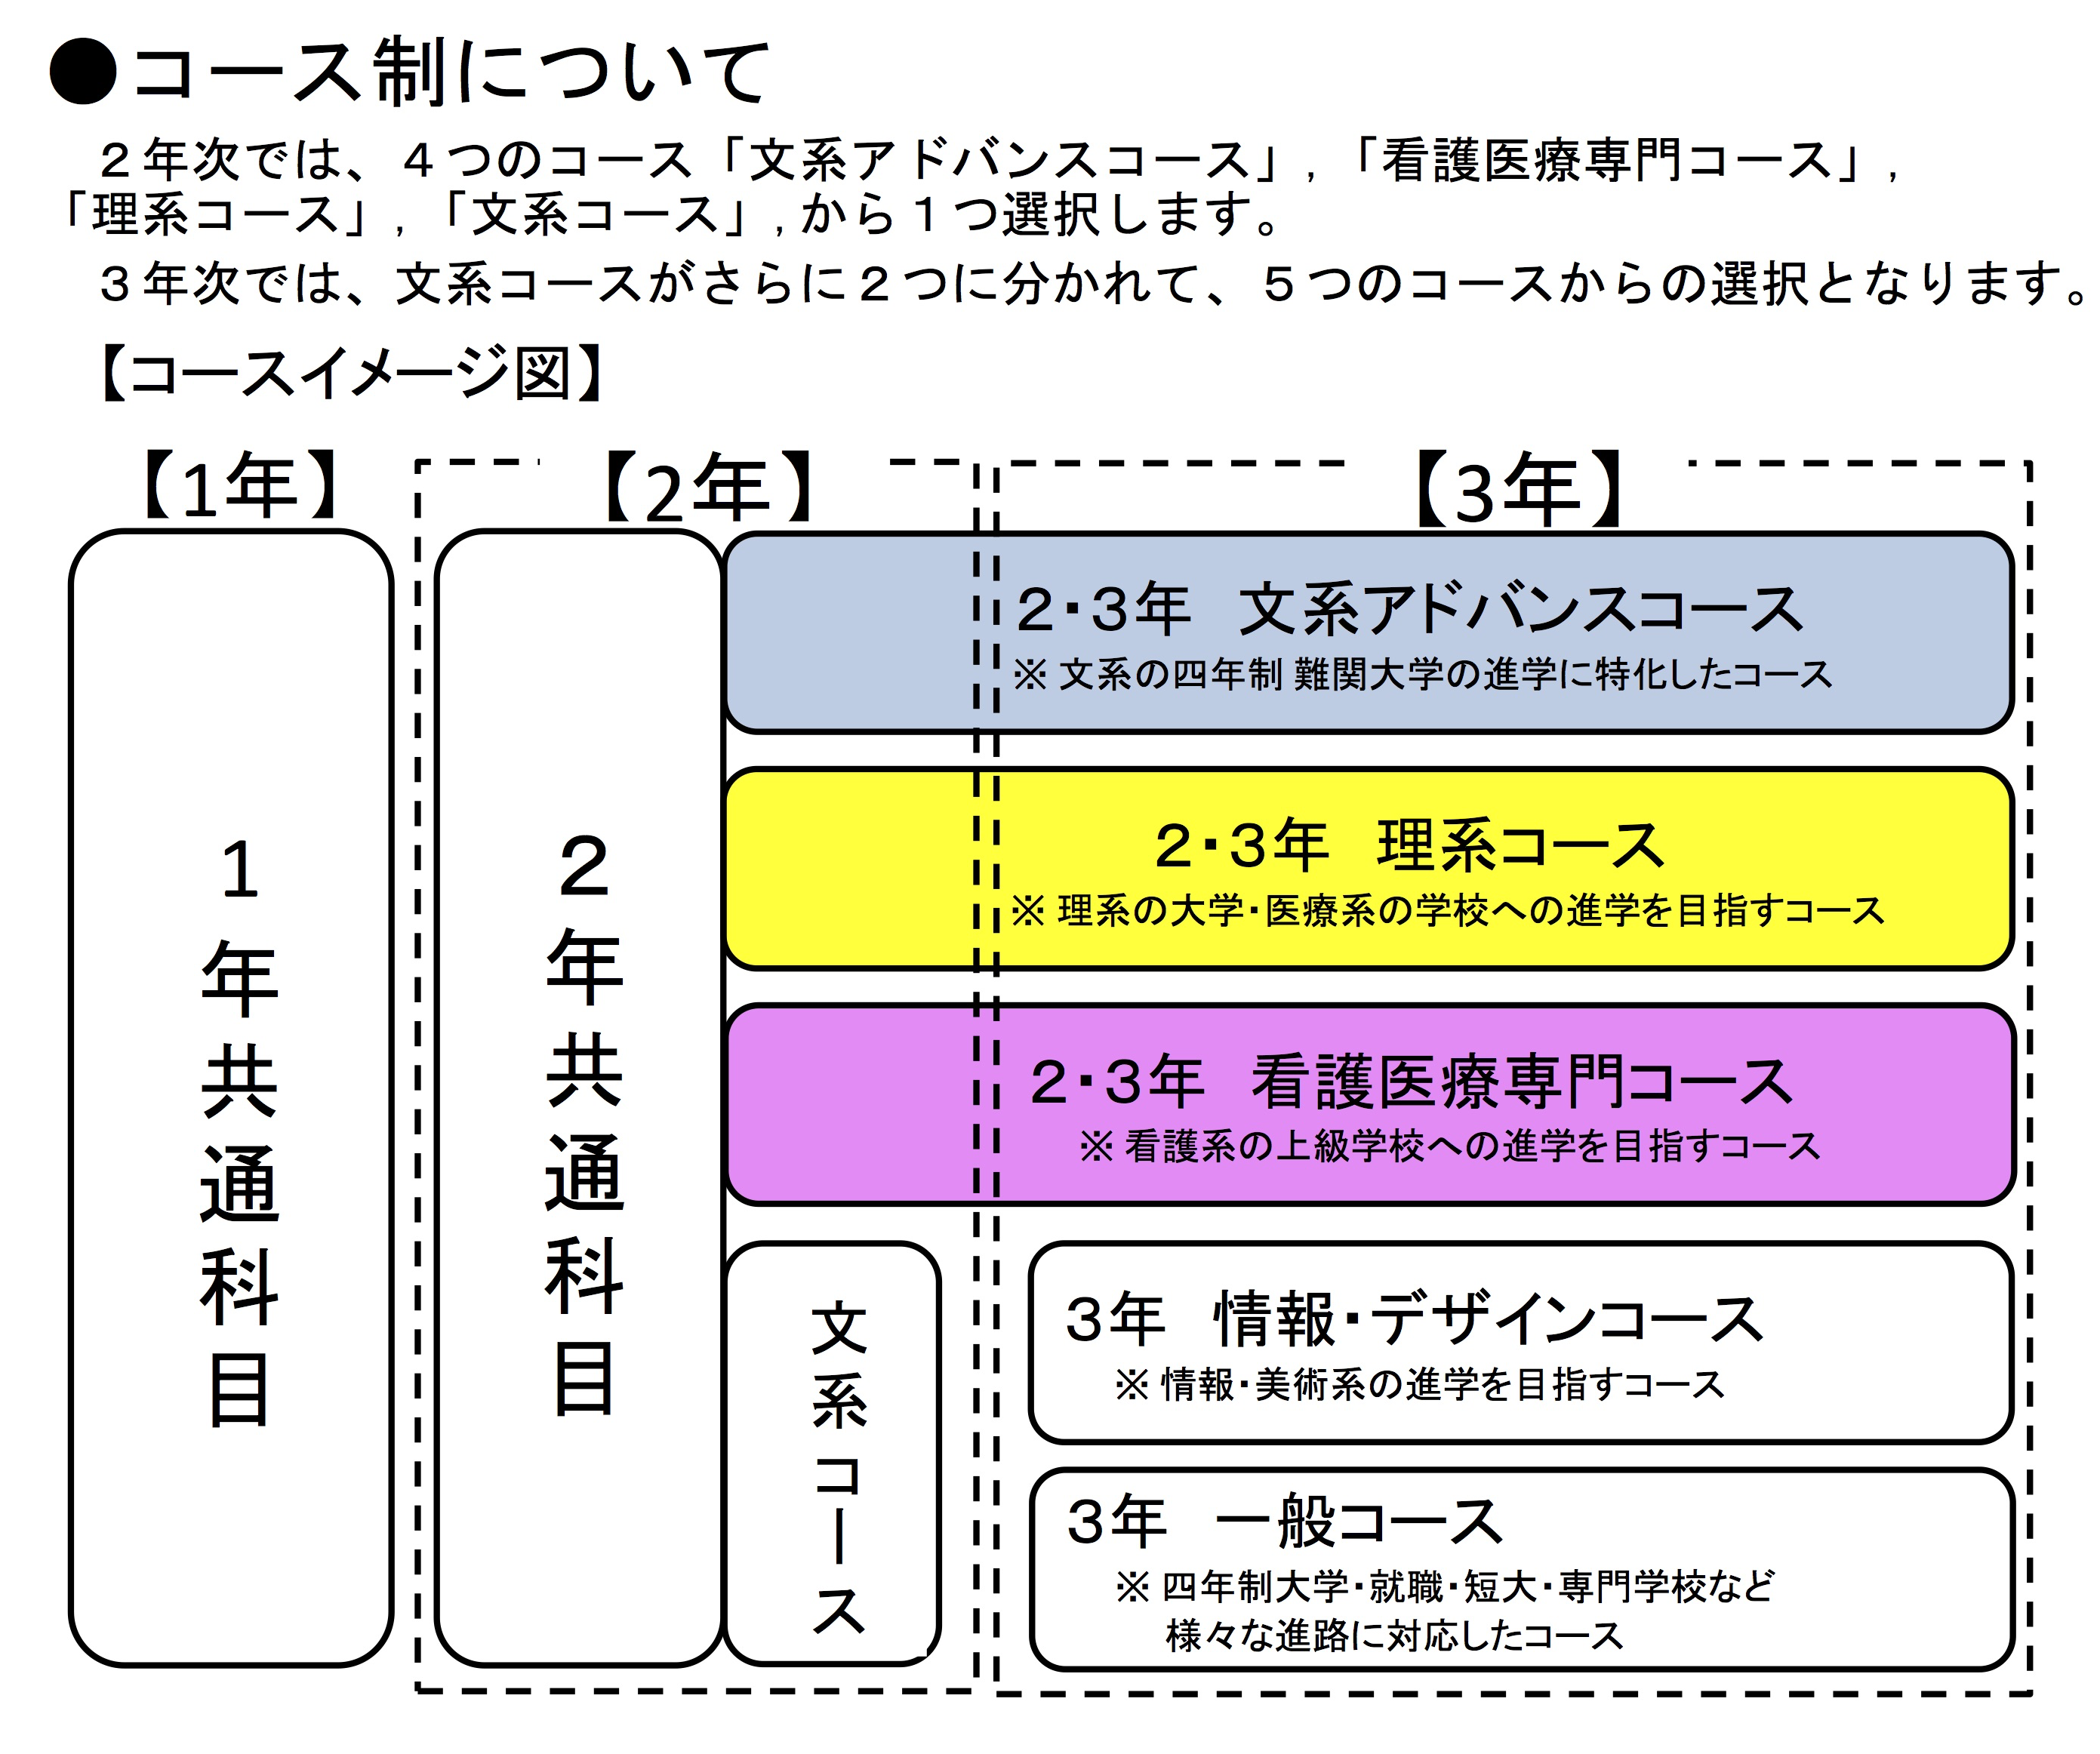 H30 コースイメージ.png